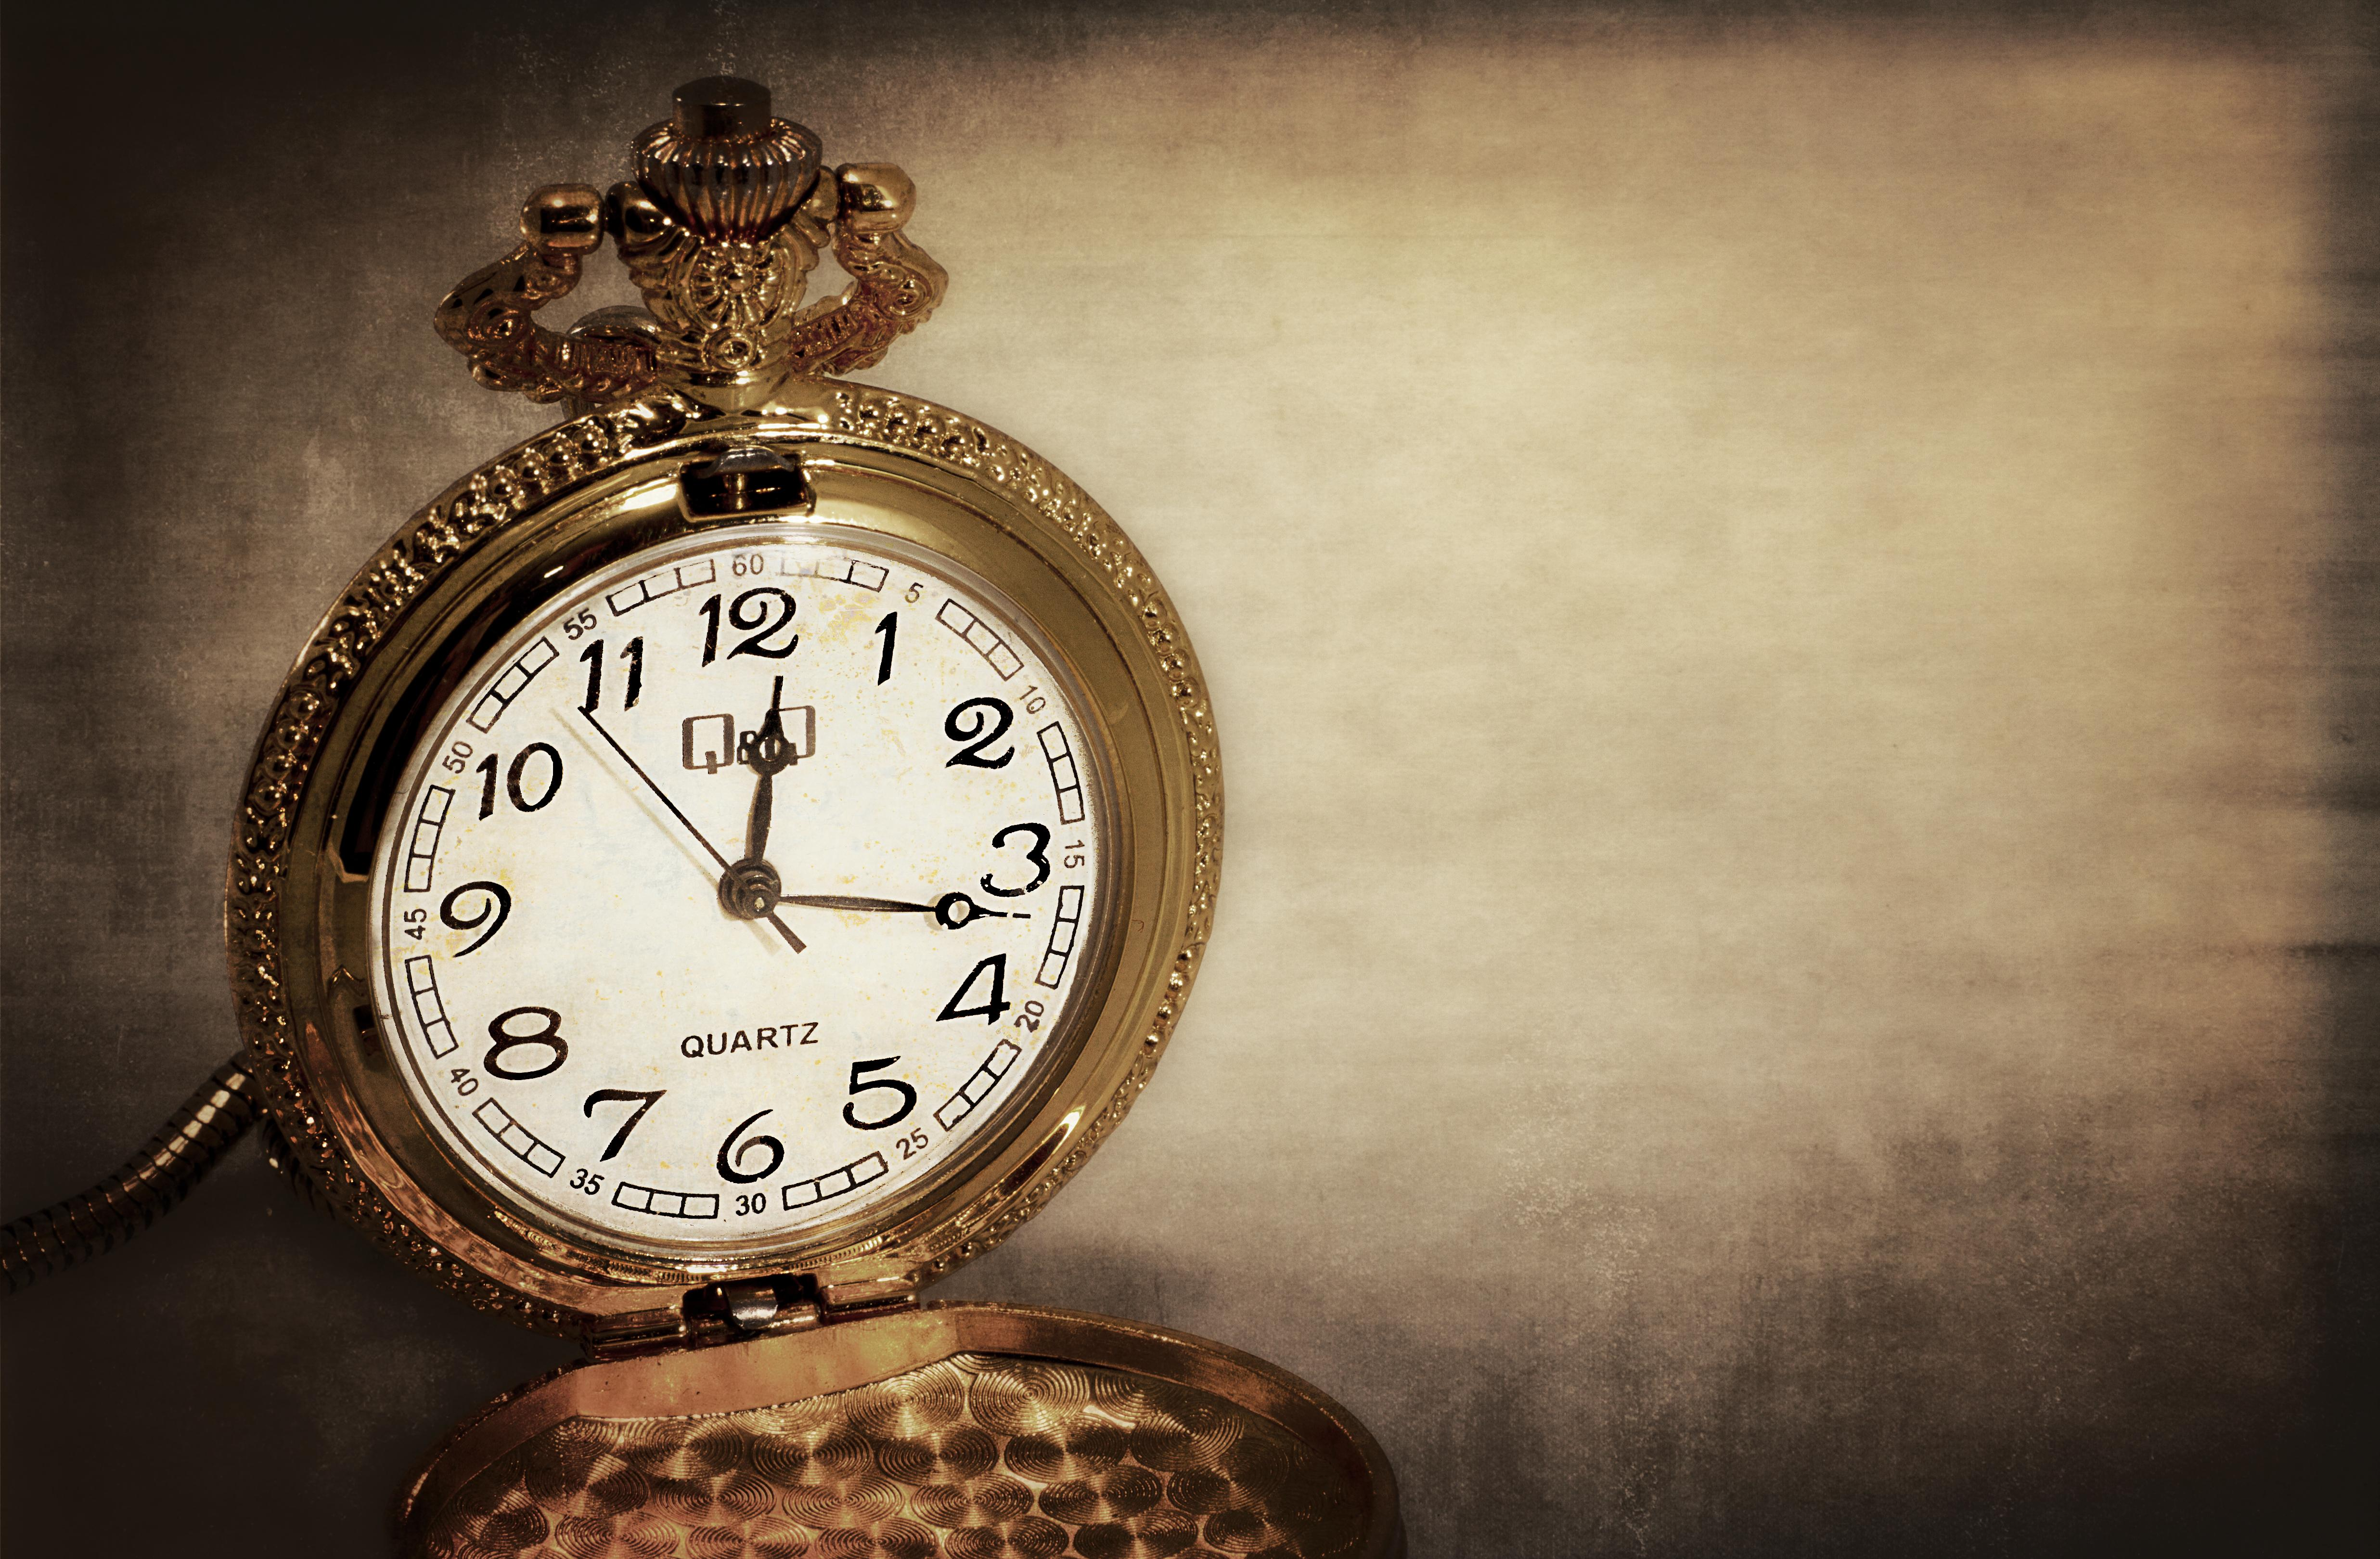 Photo of a vintage pocket watch